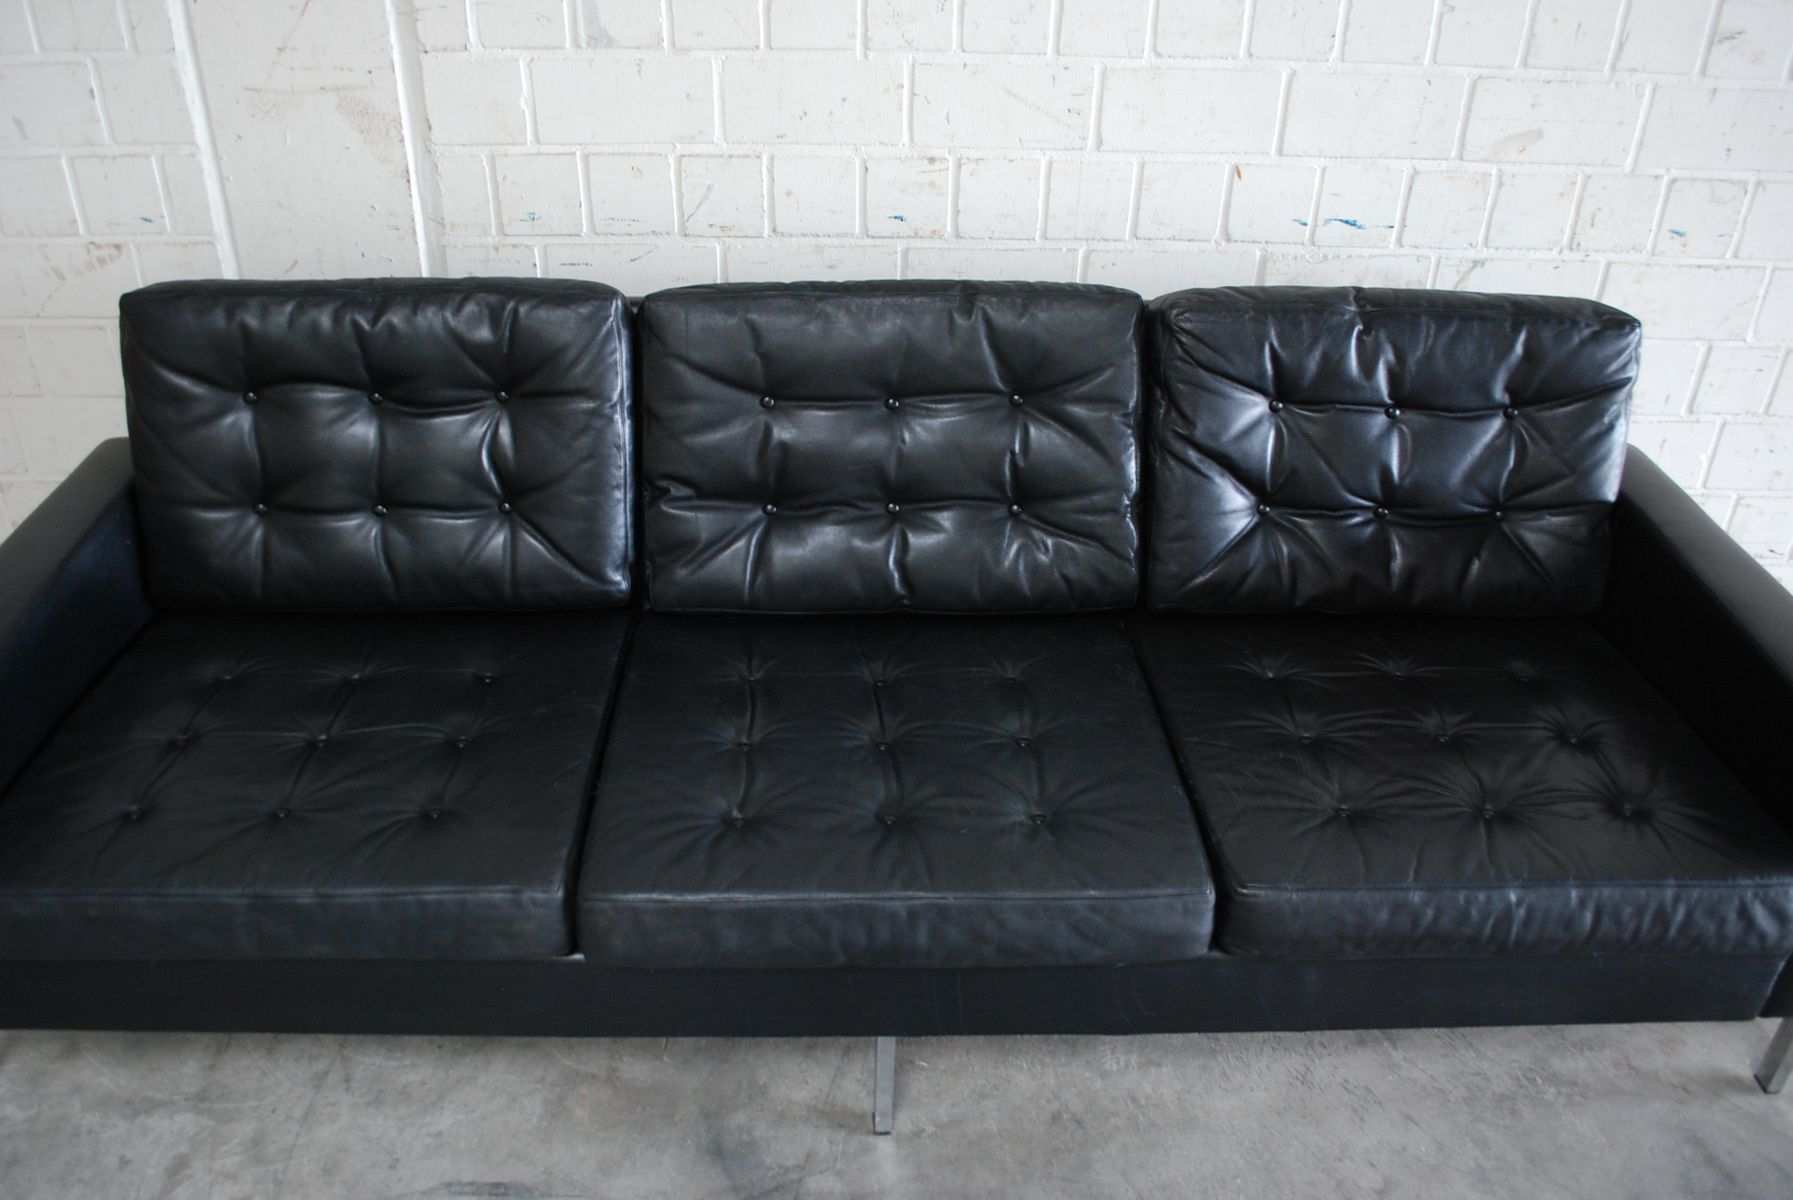 Vintage German Black Leather Sofa 1960s for sale at Pamono